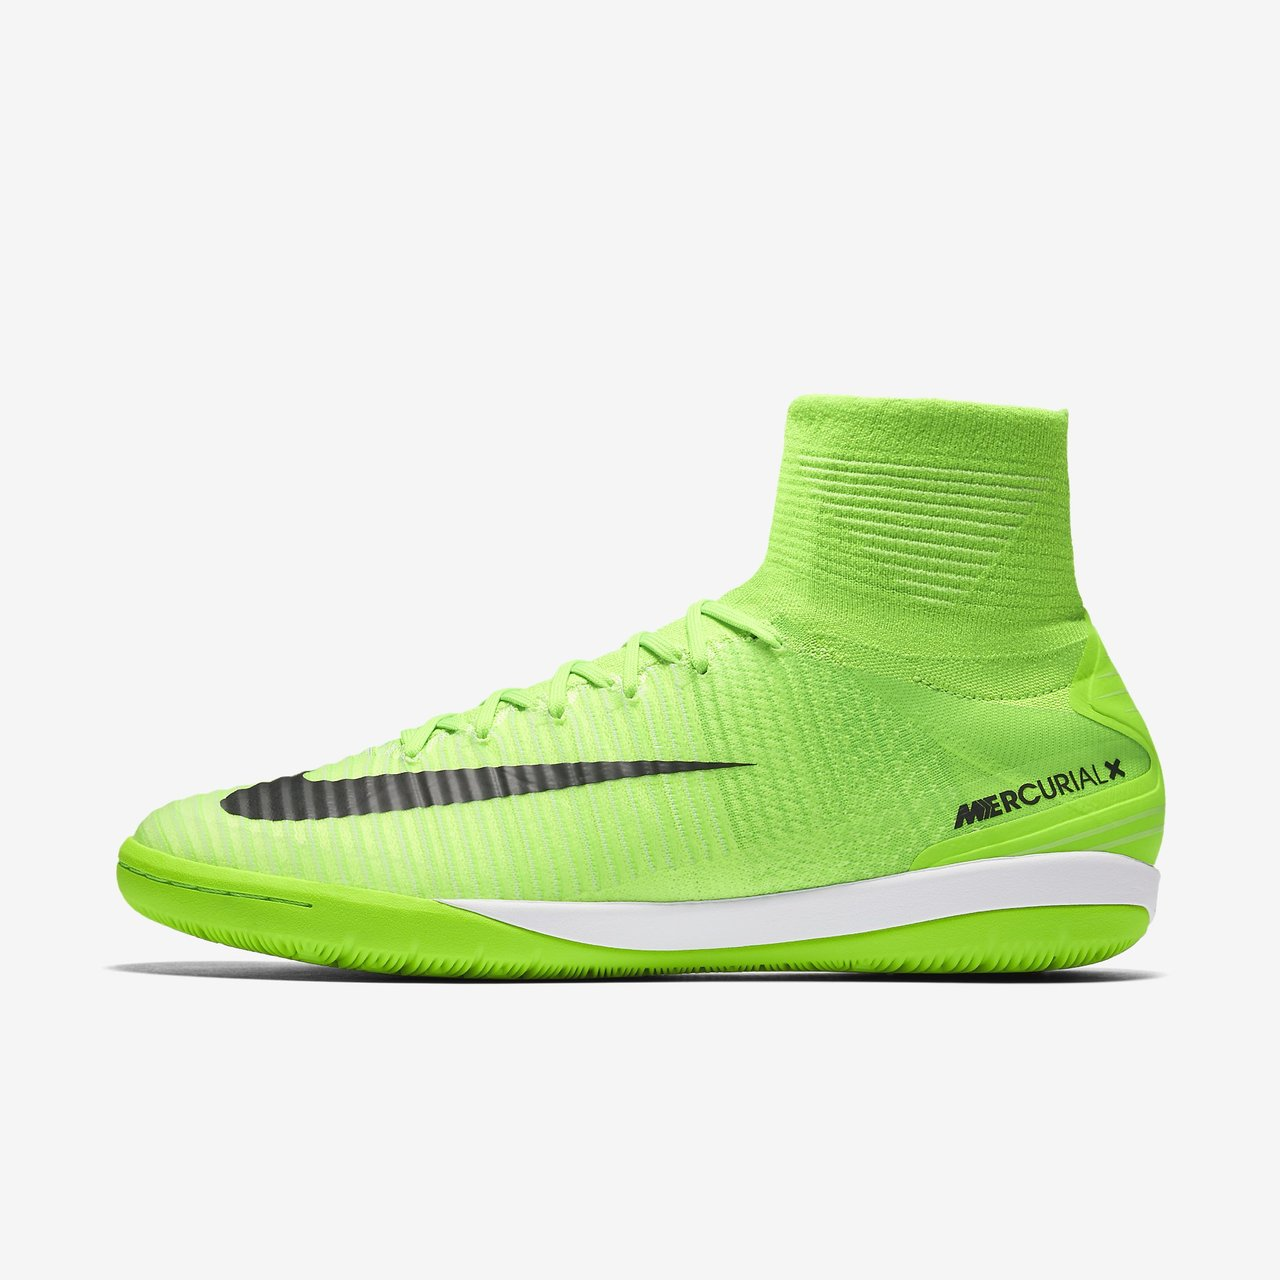 nike mercurialx proximo ii ic radiation flare pack. Black Bedroom Furniture Sets. Home Design Ideas